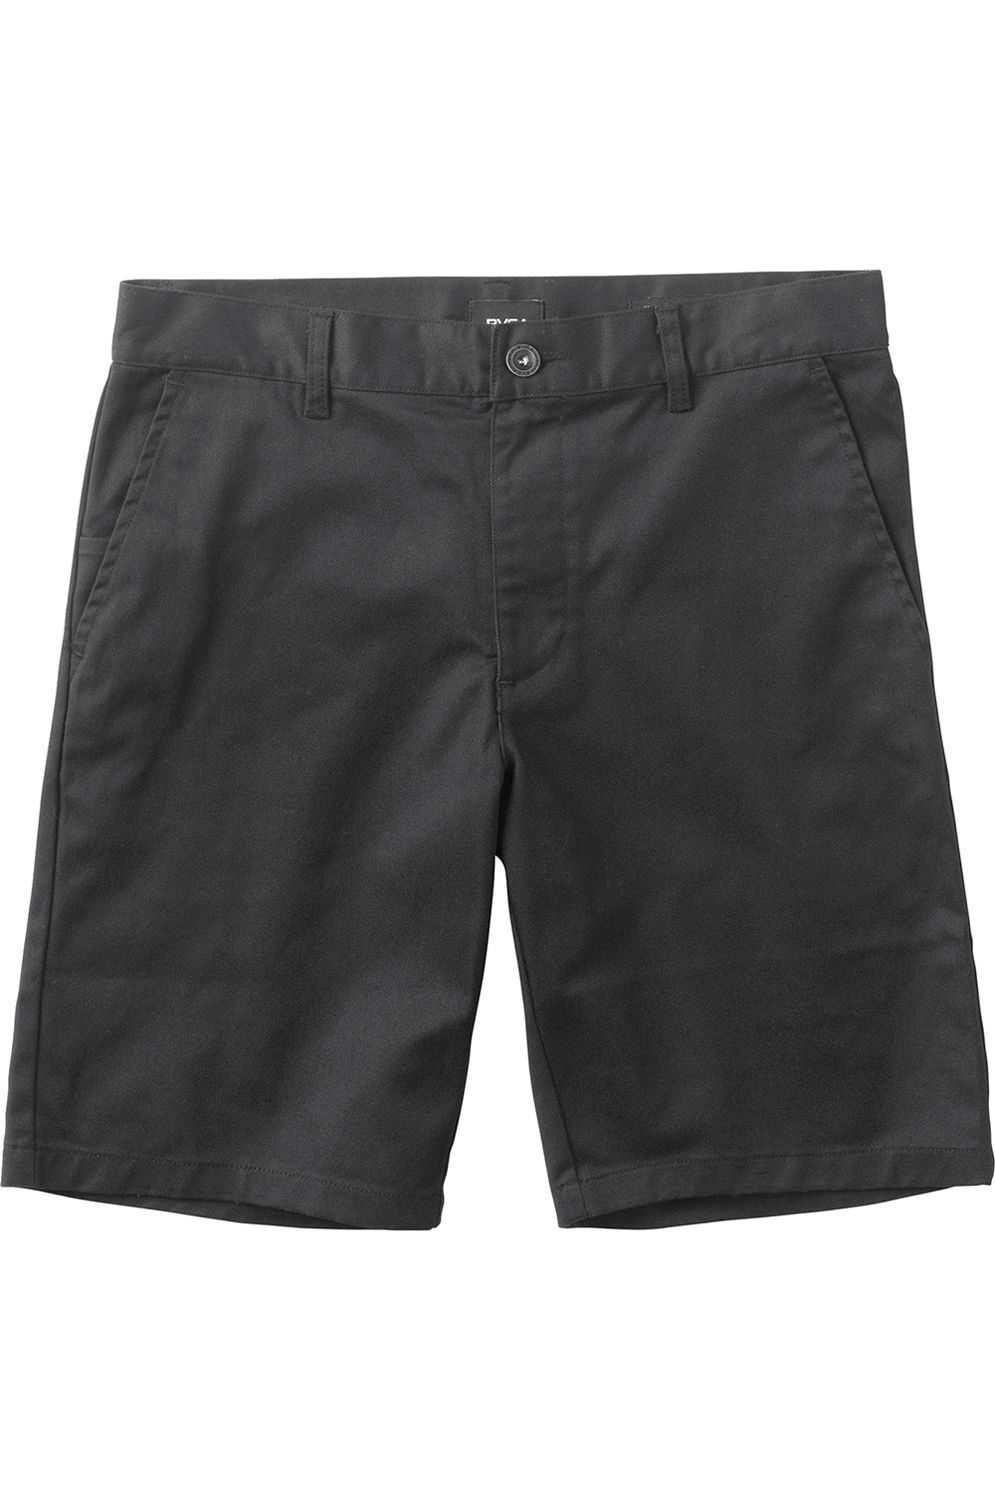 Walkshorts RVCA WEEKEND STRETCH Black